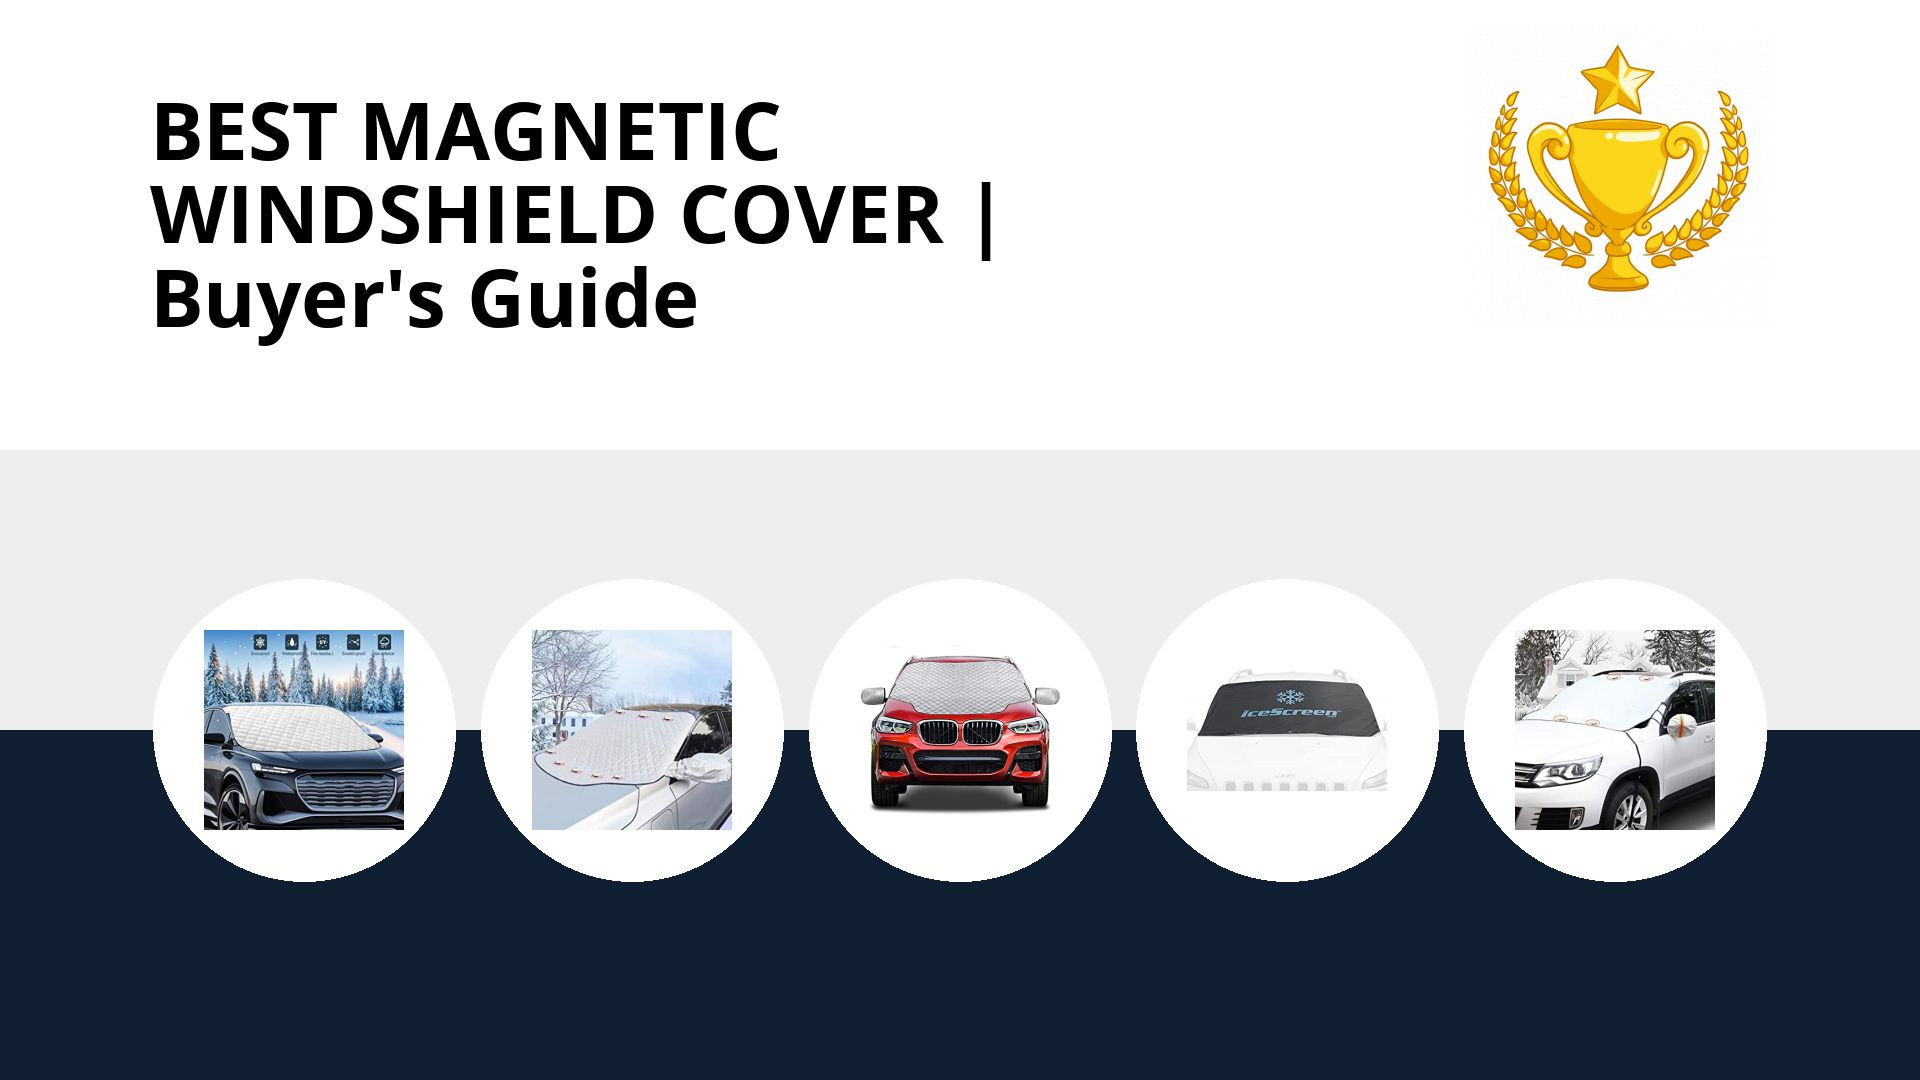 Best Magnetic Windshield Cover: image